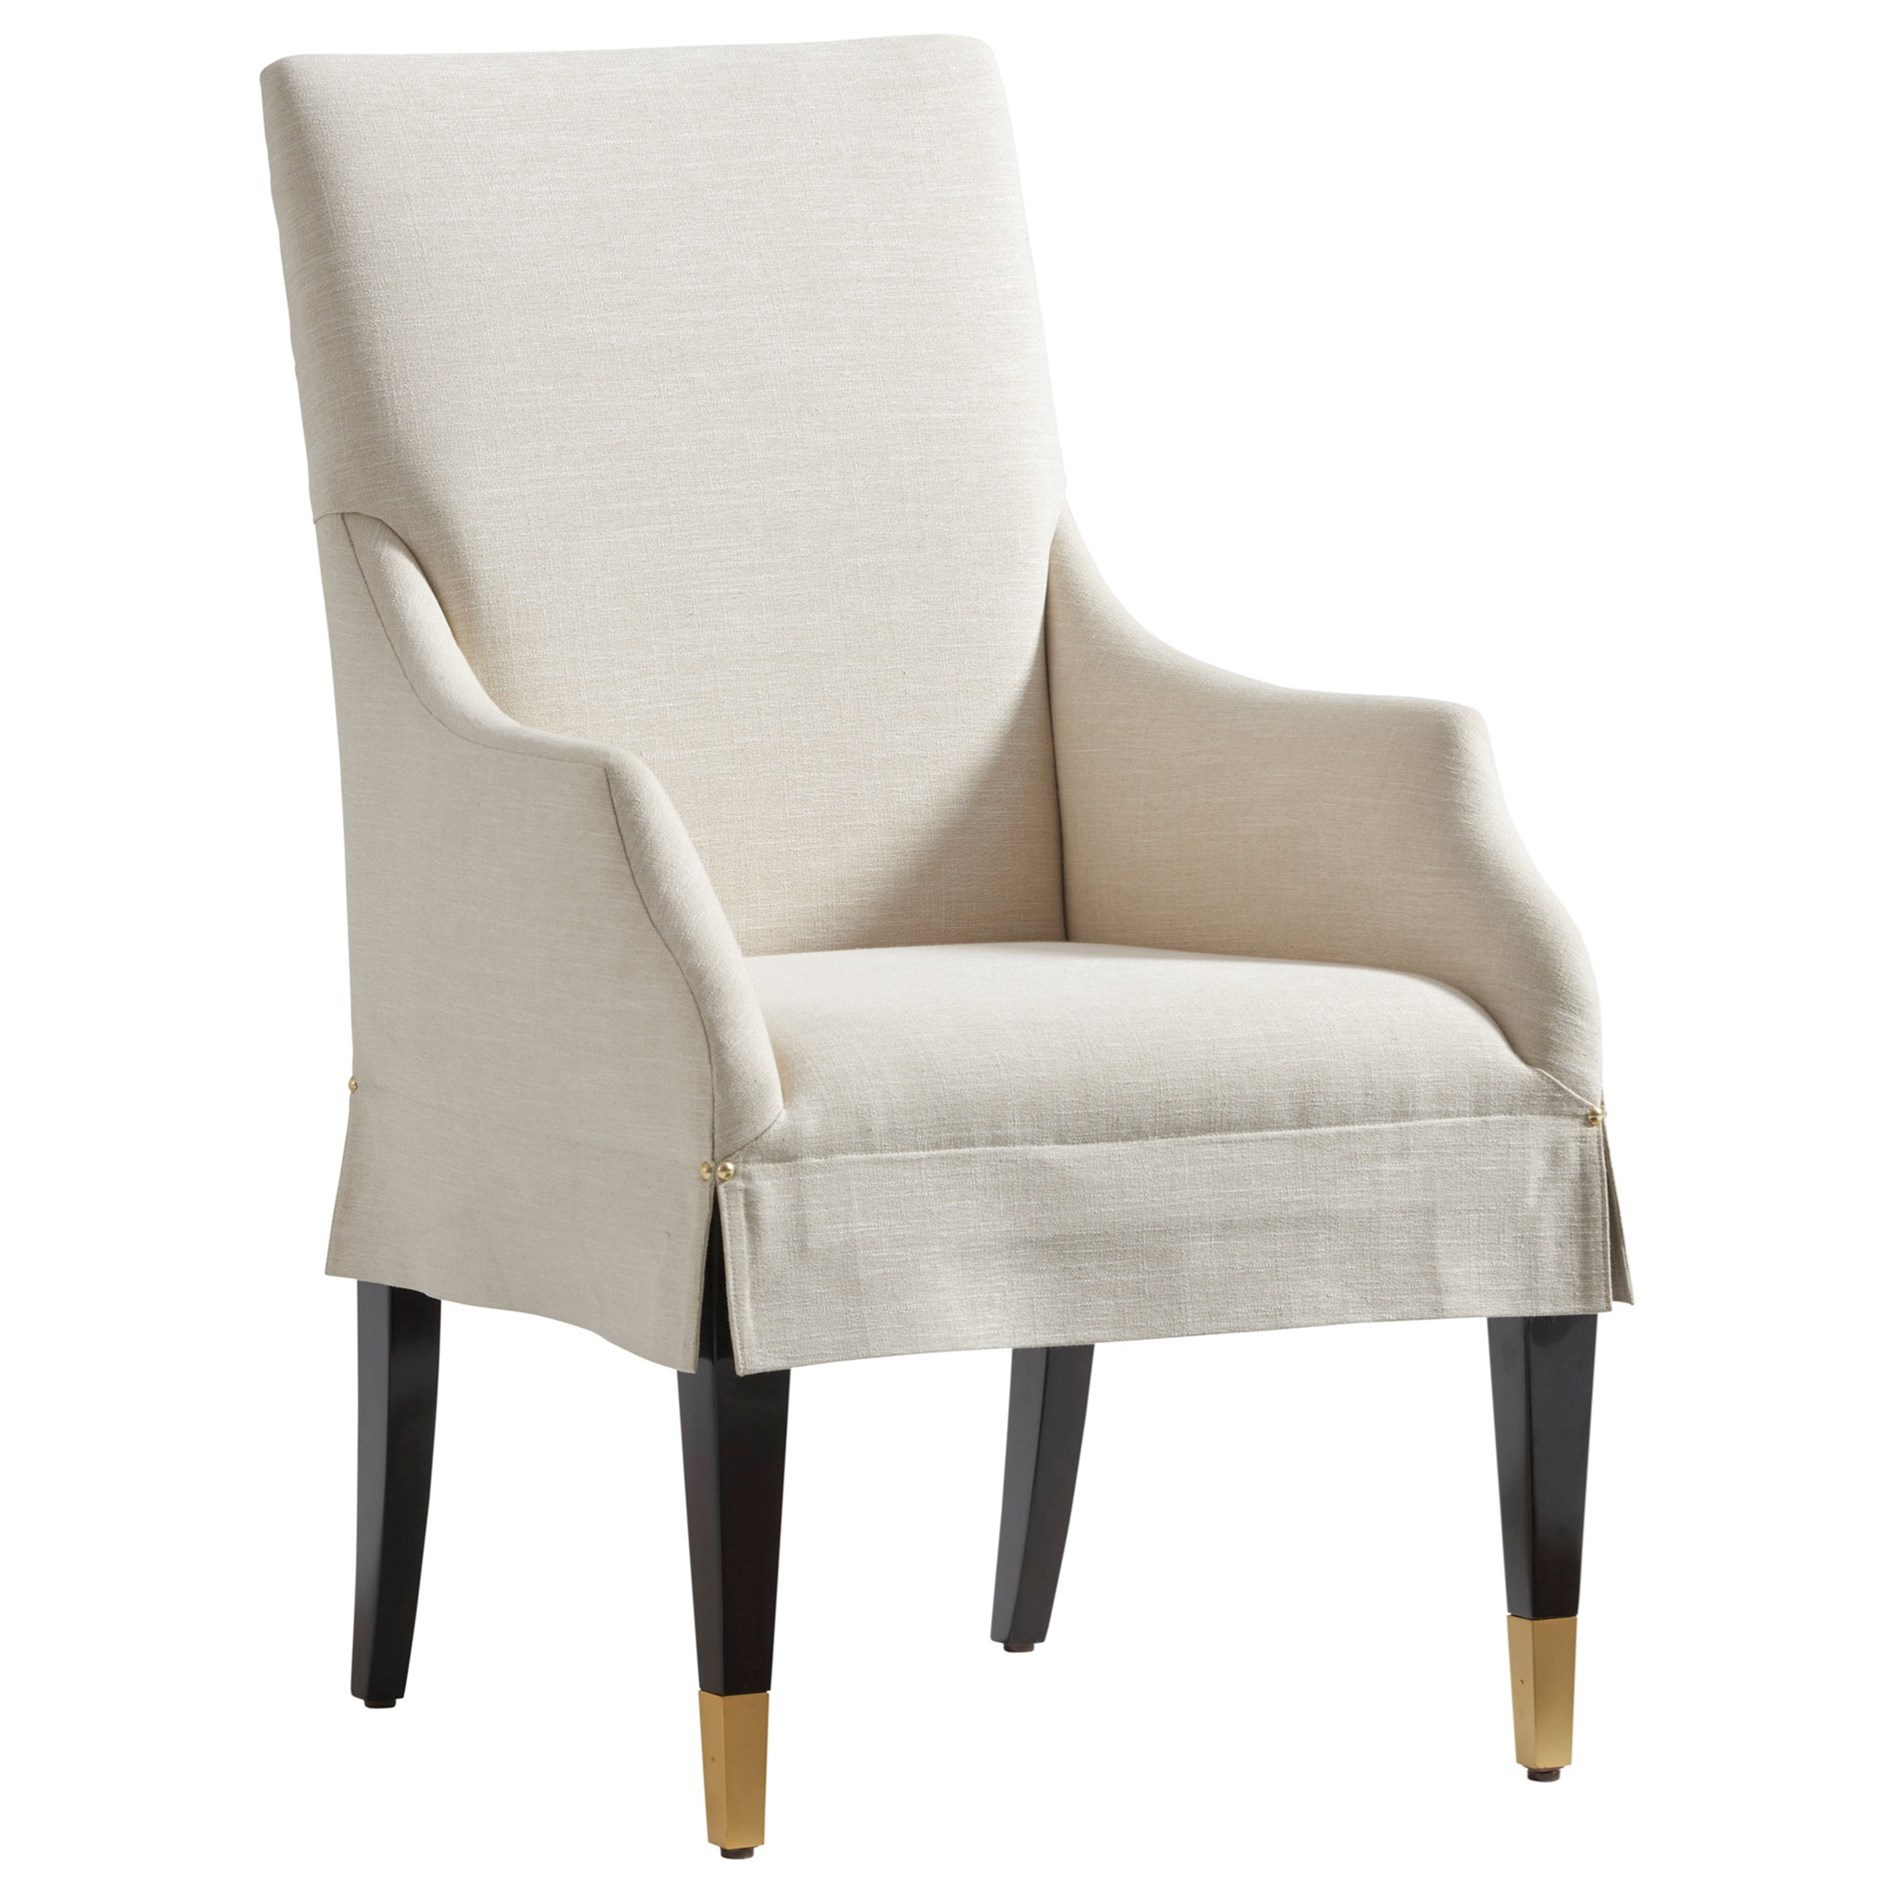 Carlyle Monarch Upholstered Arm Chair by Lexington at Baer's Furniture